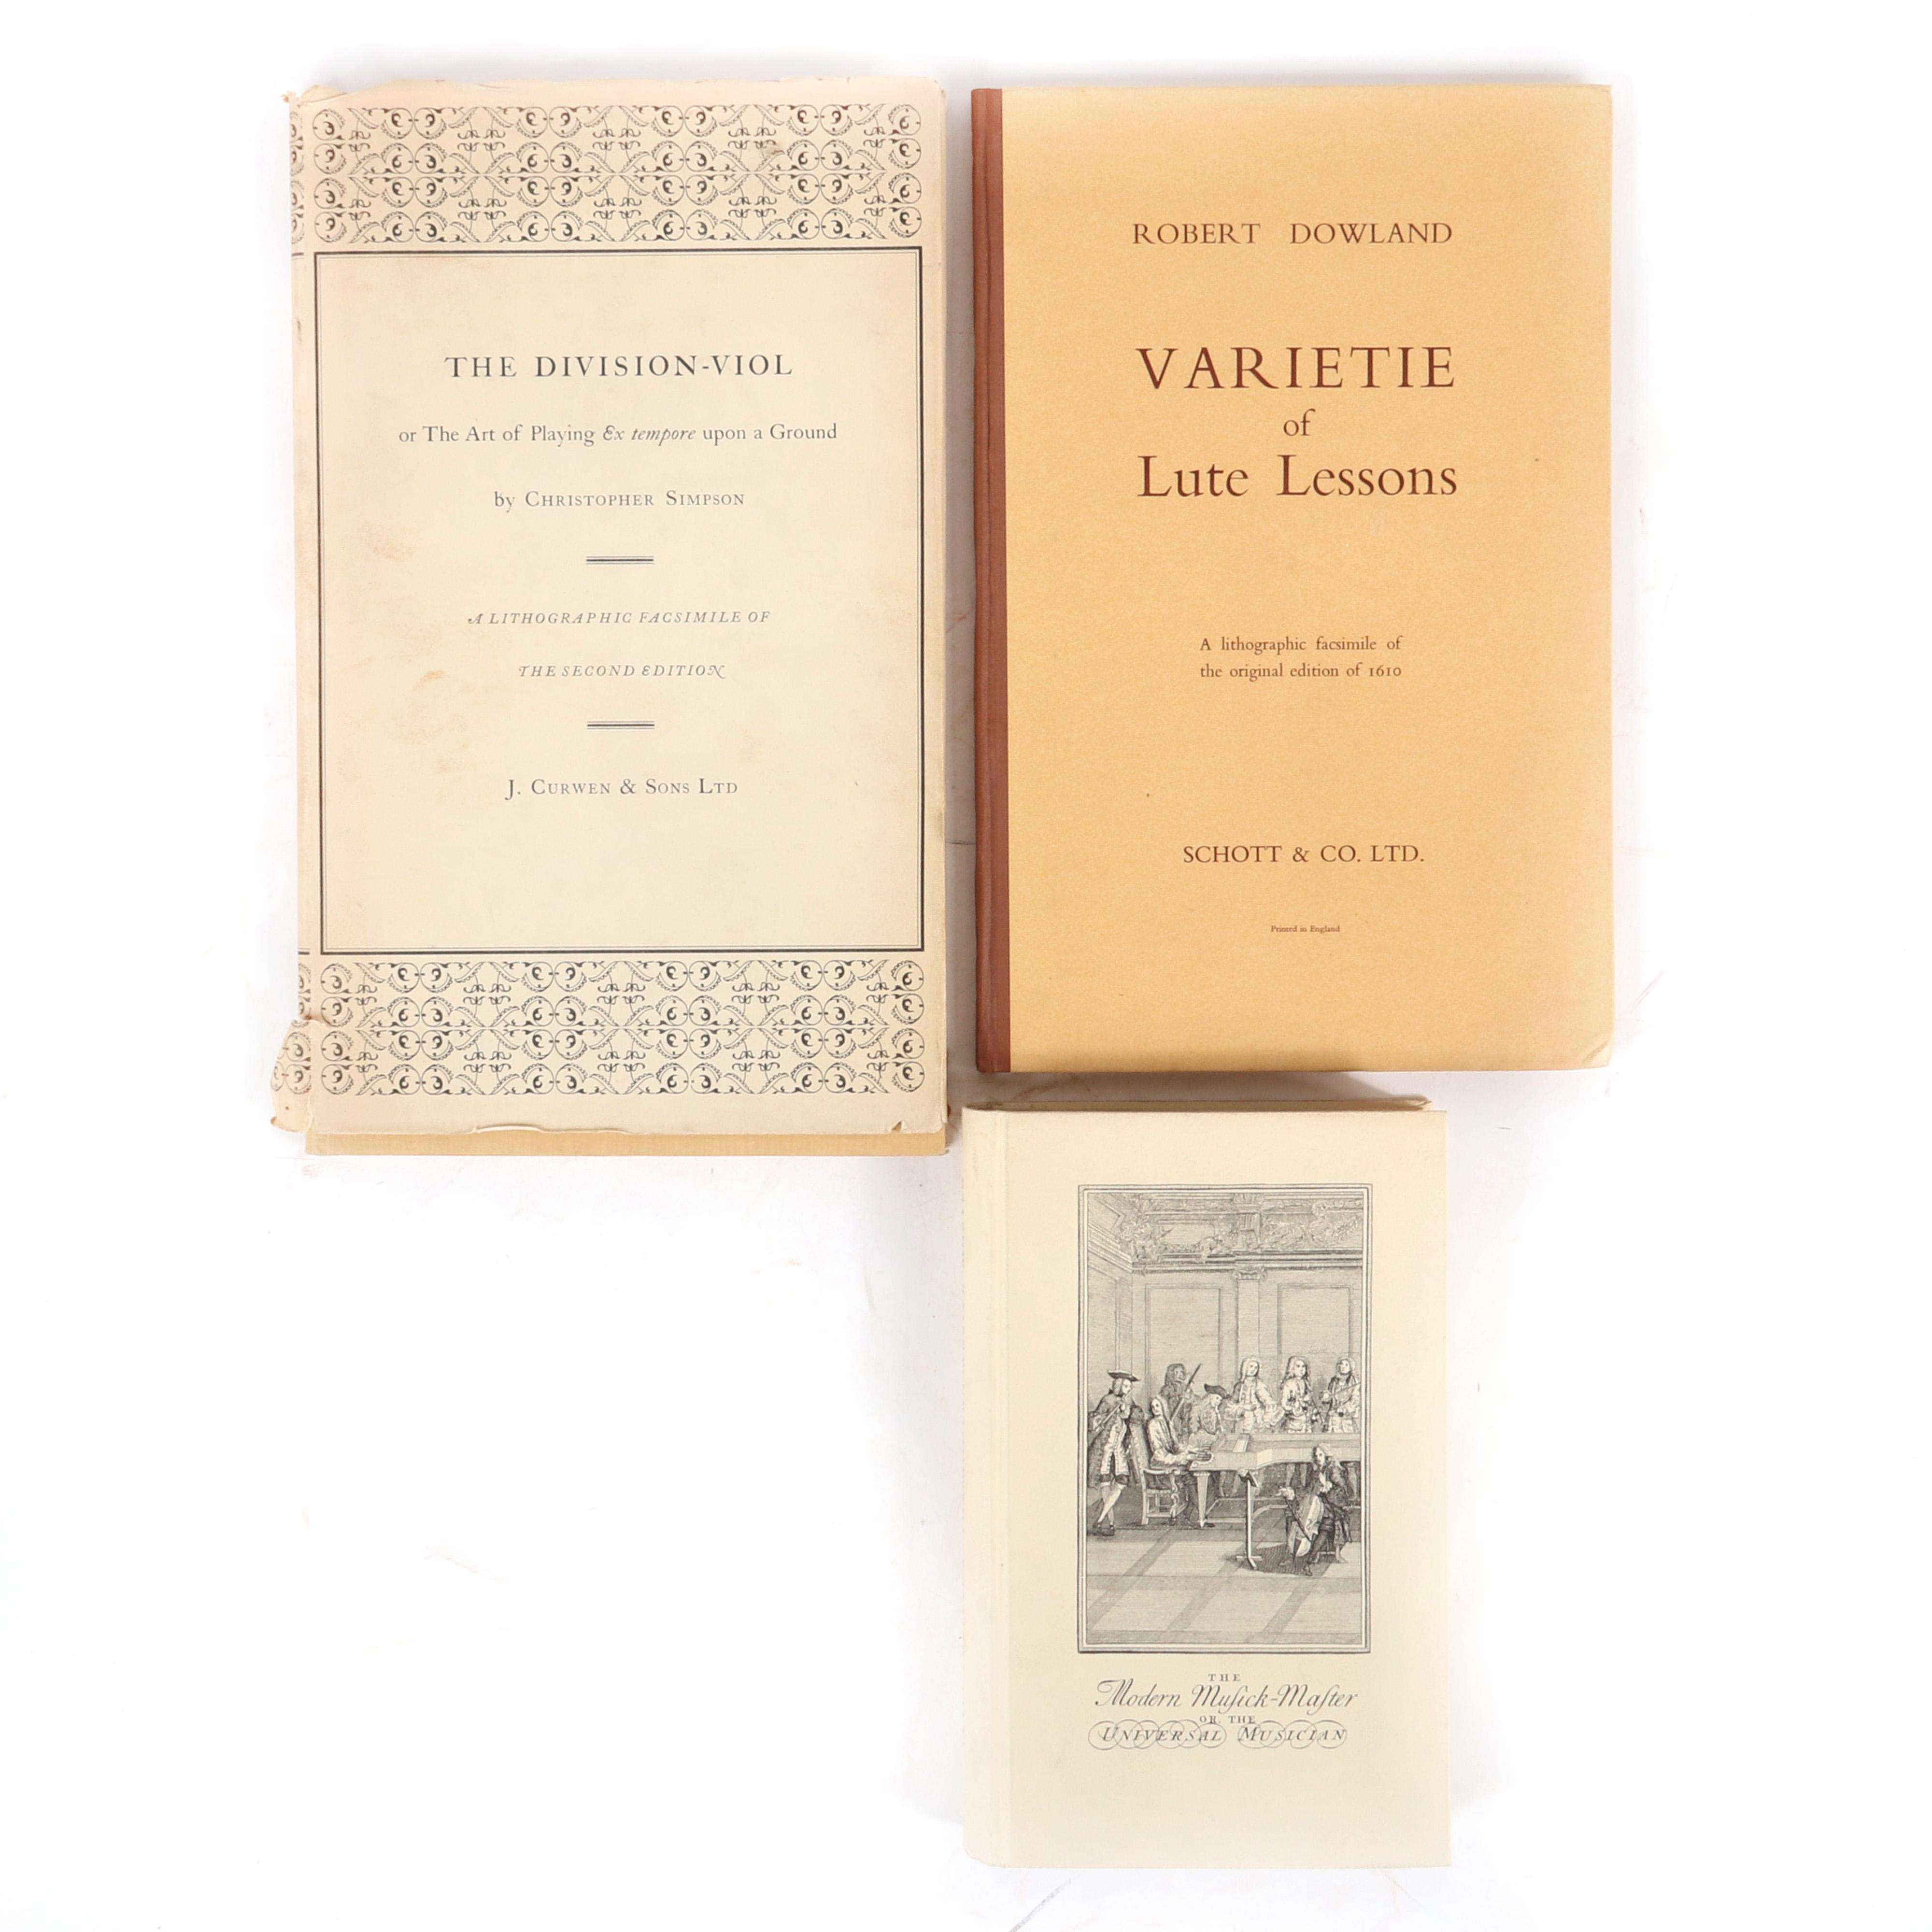 """Three music books and scores: The Division-Viol, Christopher Simpson, Limited Edition 132/750, The Modern Musick-Master or the Universal Musician, Peter Prelleur, 1965 1/4""""H x 8""""W x 12D"""